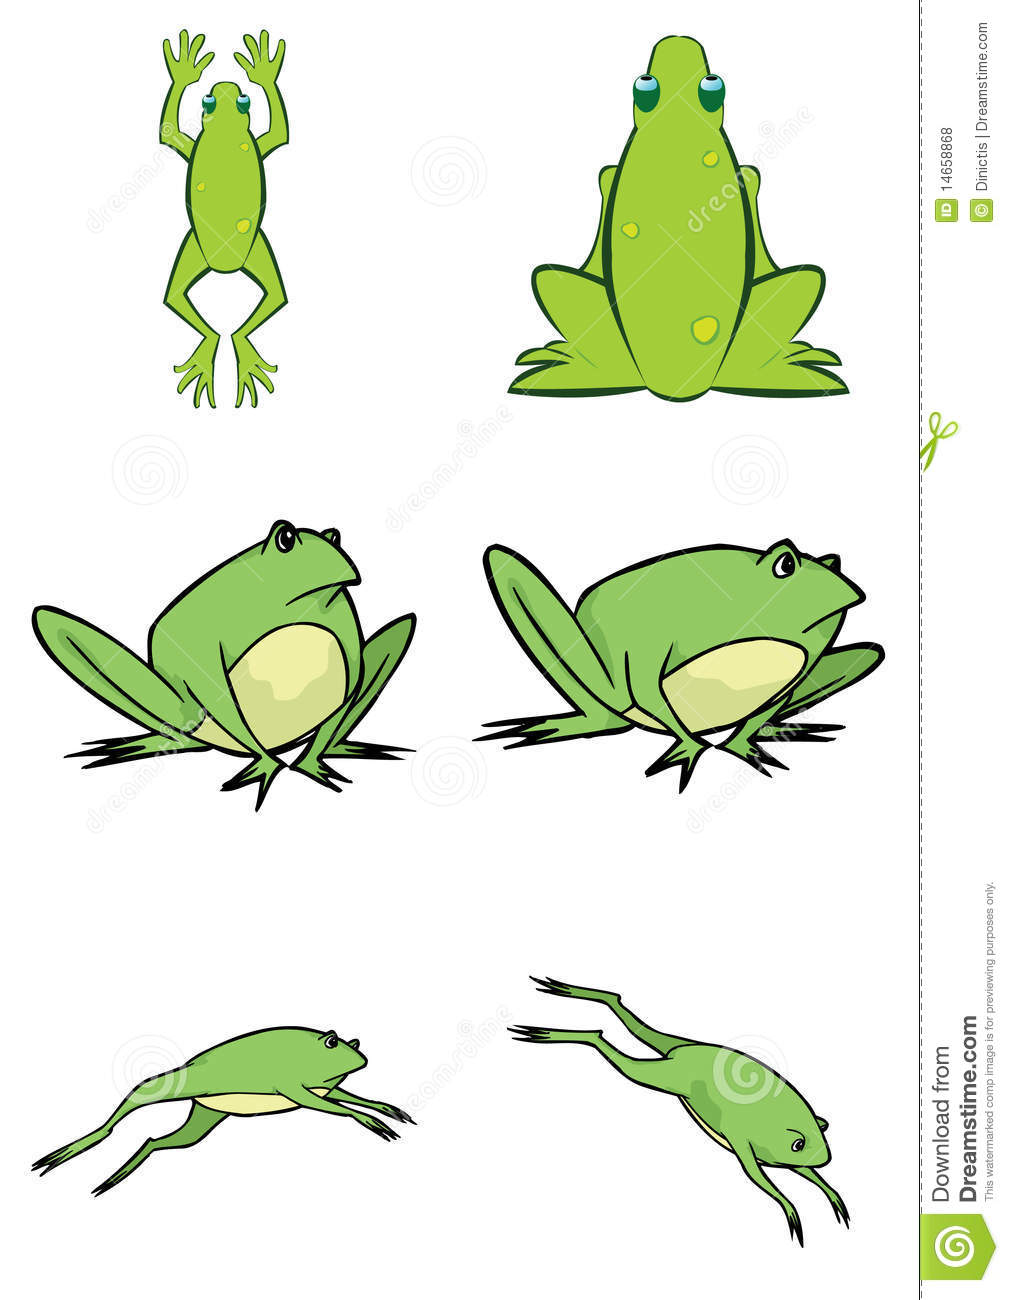 551210974 Shutterstock Animal Footprints Vector Set Foot moreover Nature 2 together with Pencil Pouch Clipart 29612 besides Wolf Hand Tattoo also Hafsa p1. on frog silhouette